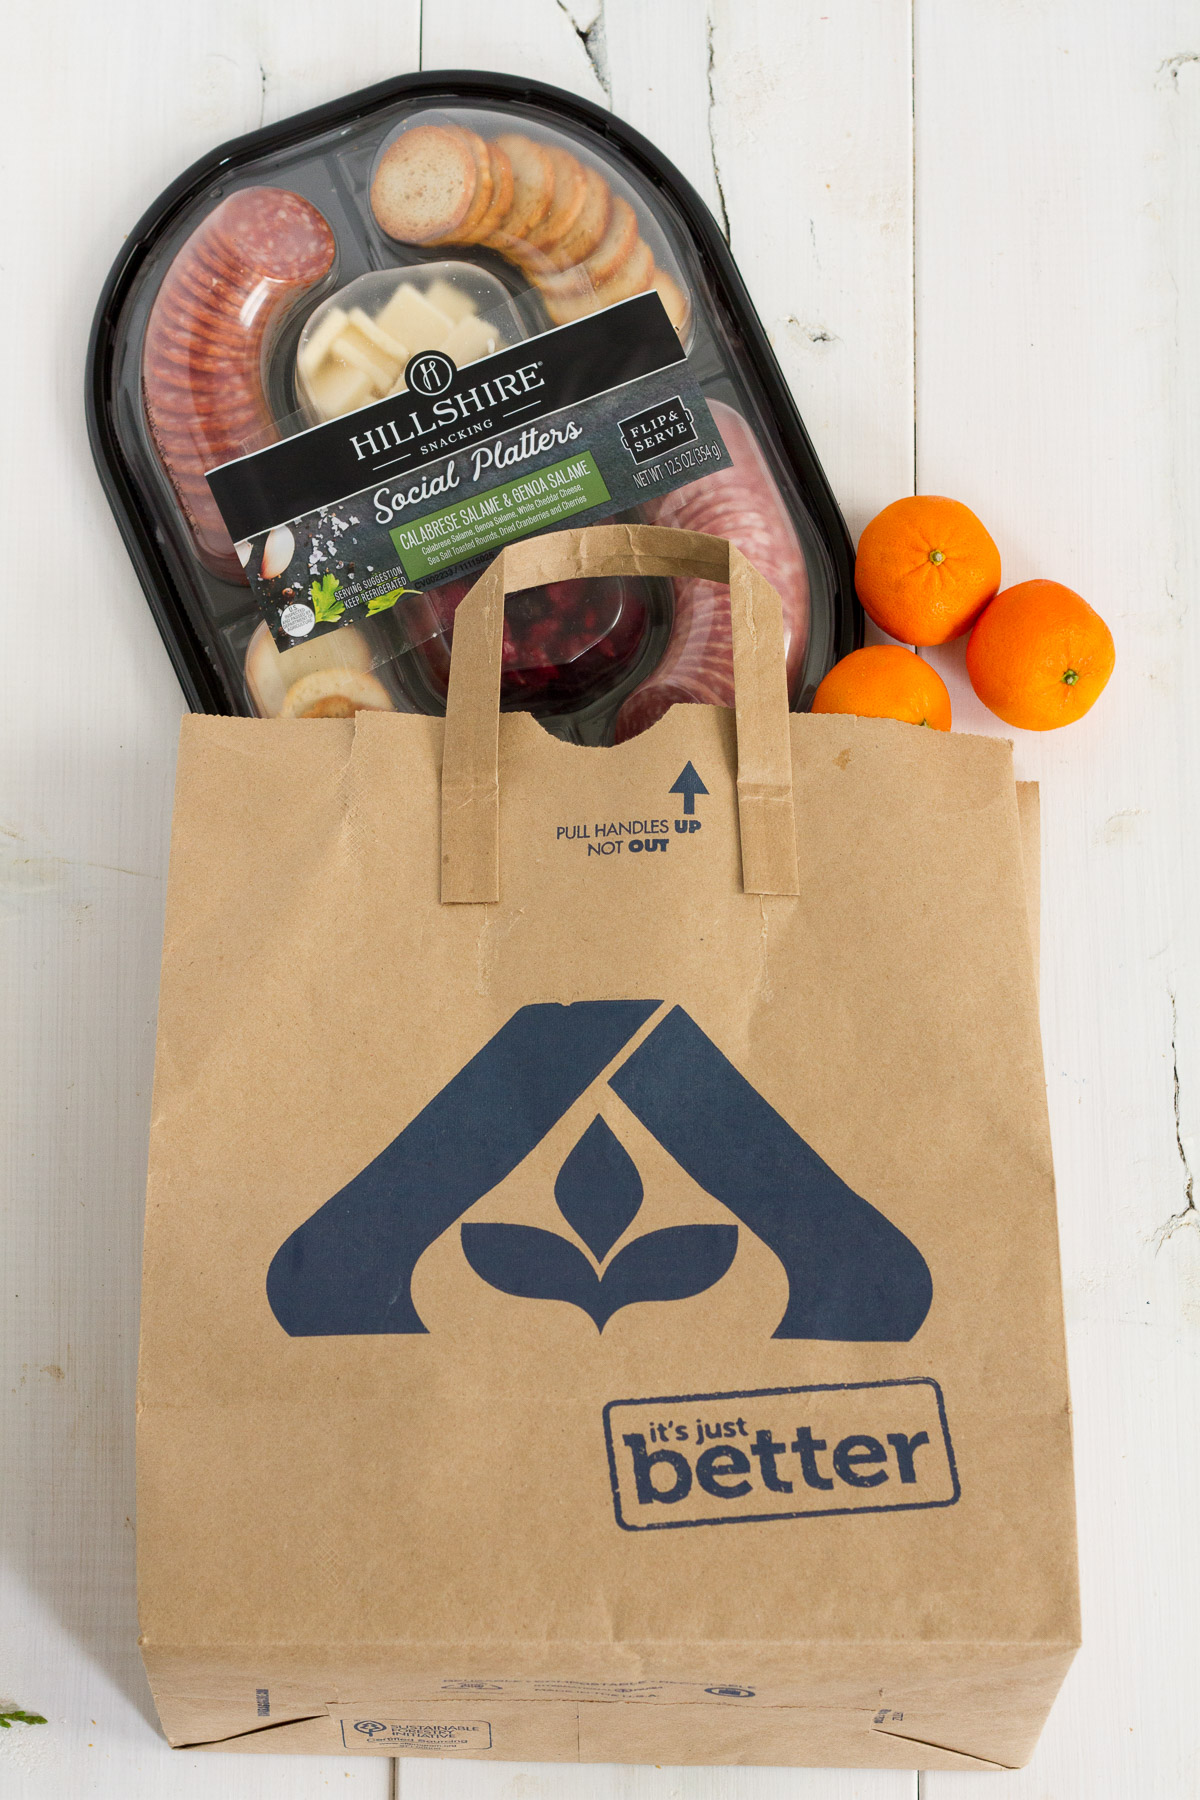 hillshire snacking social platters available at Albertsons